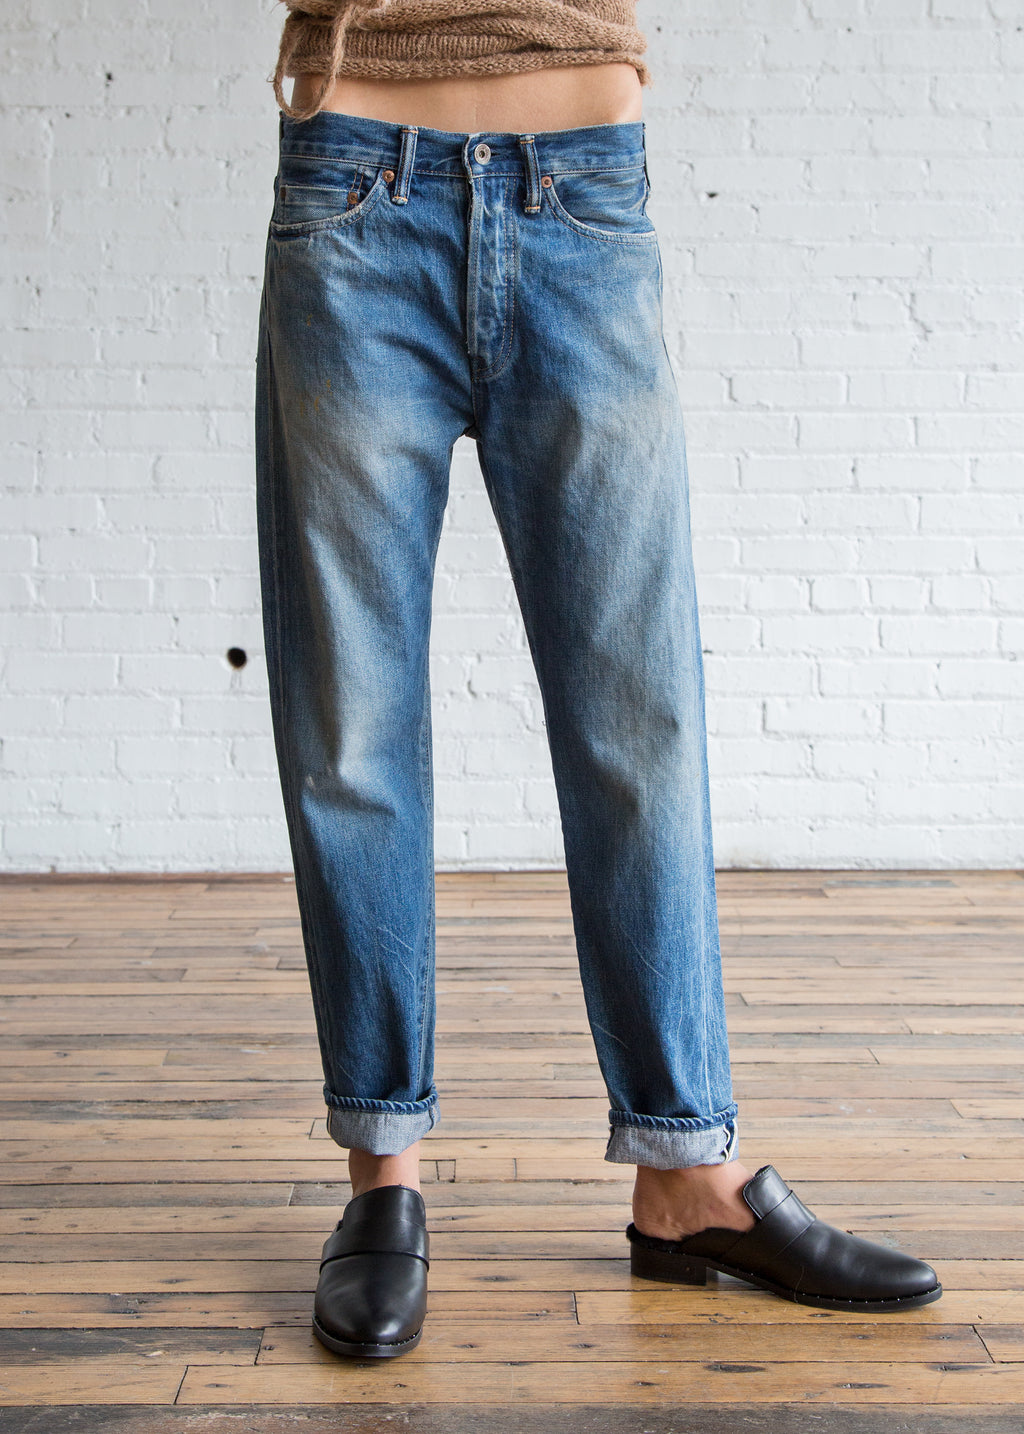 Chimala Selvedge Denim Narrow Tapered Cut Medium Distress